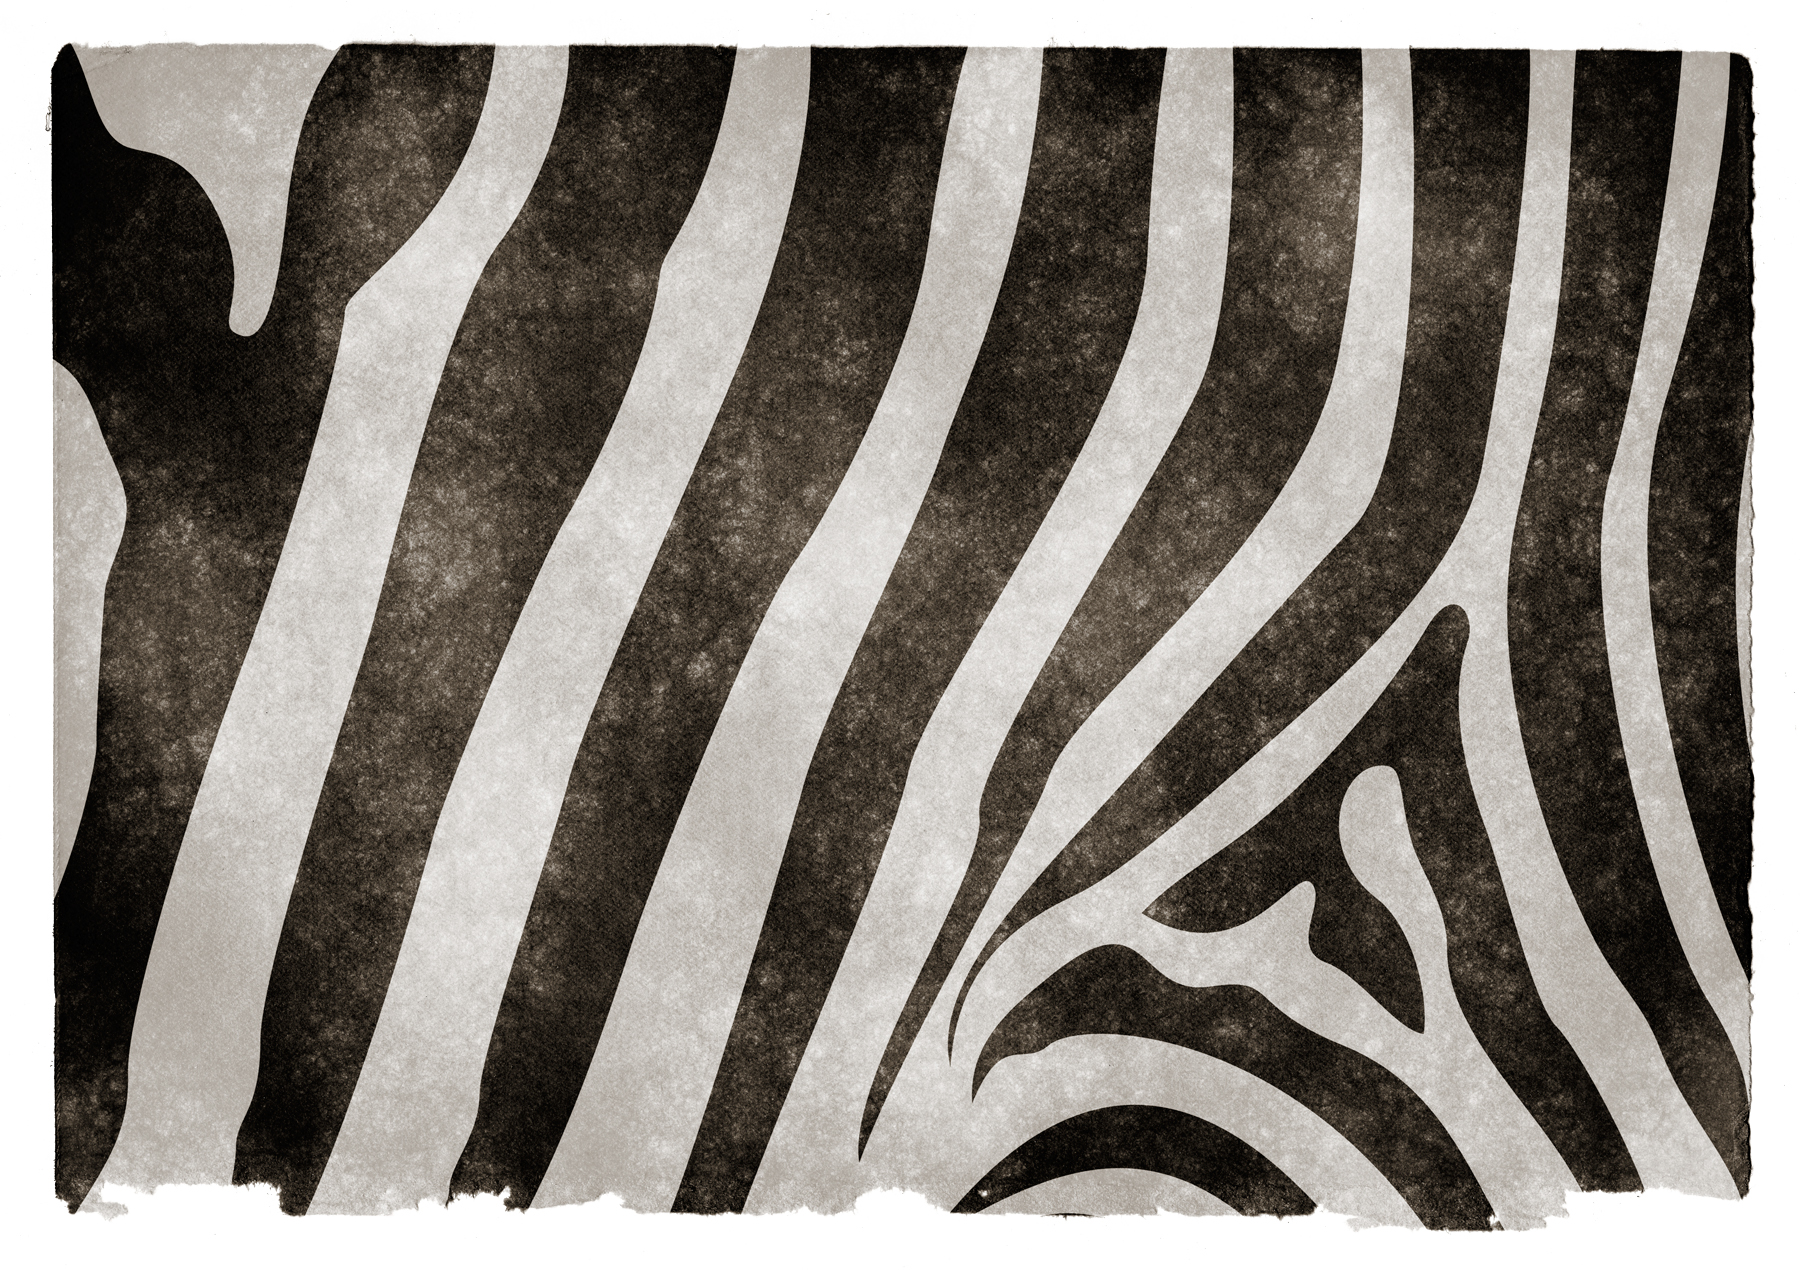 Zebra stripes grunge paper photo